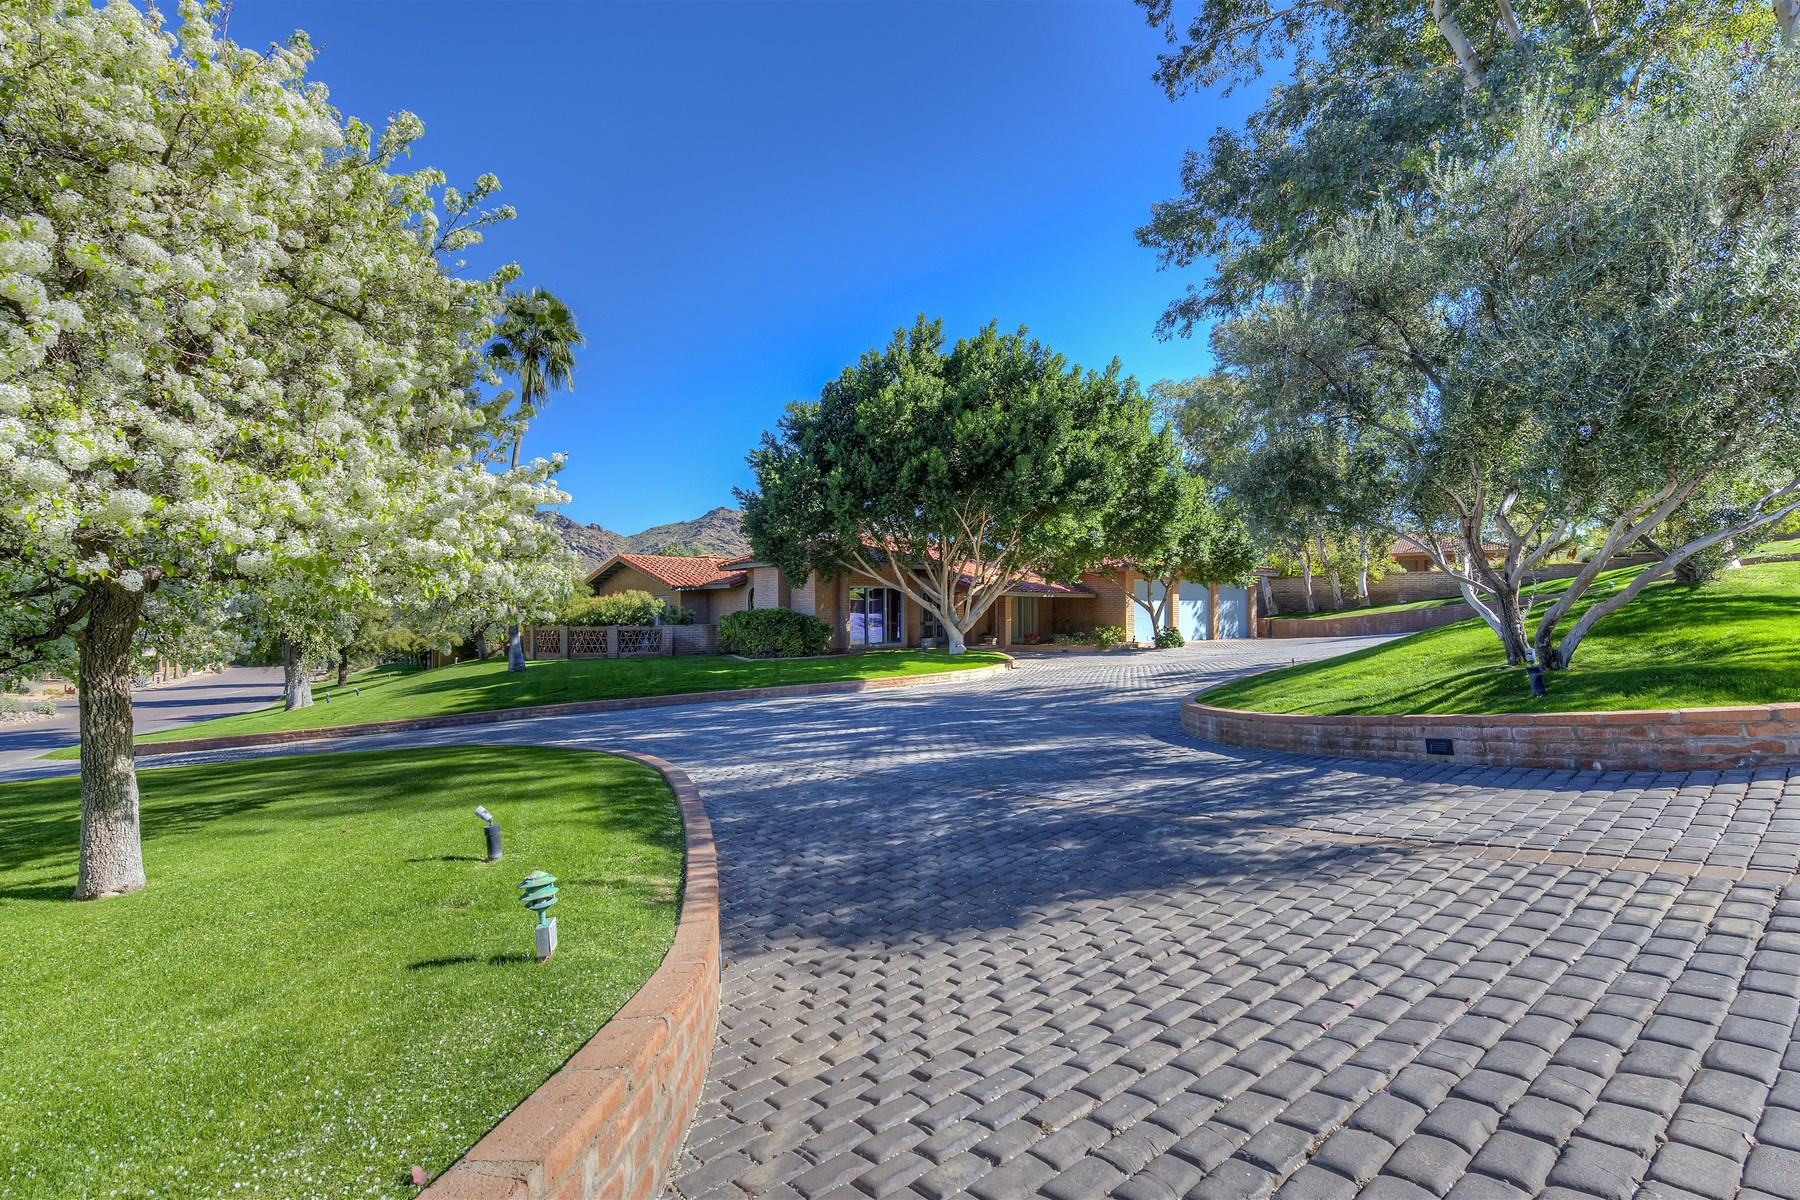 Einfamilienhaus für Verkauf beim Timeless Fully Remodeled Home On An Incredible View Lot In Paradise Valley 7721 E Moonlight Lane Paradise Valley, Arizona 85253 Vereinigte Staaten